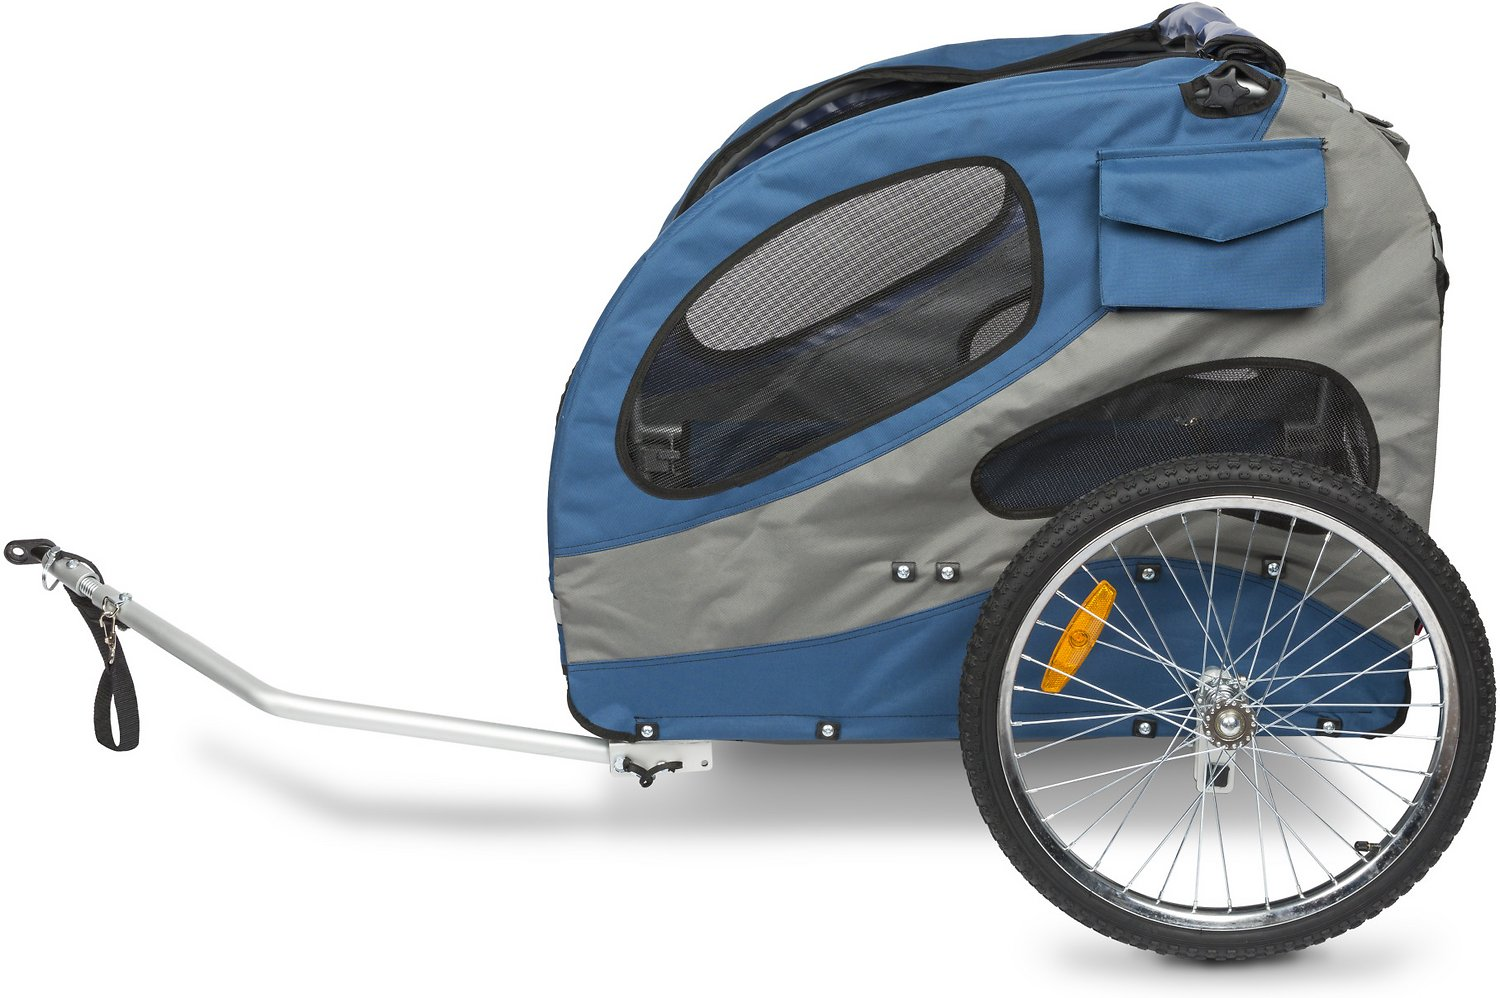 Solvit Houndabout Classic Steel Bicycle Trailer Large